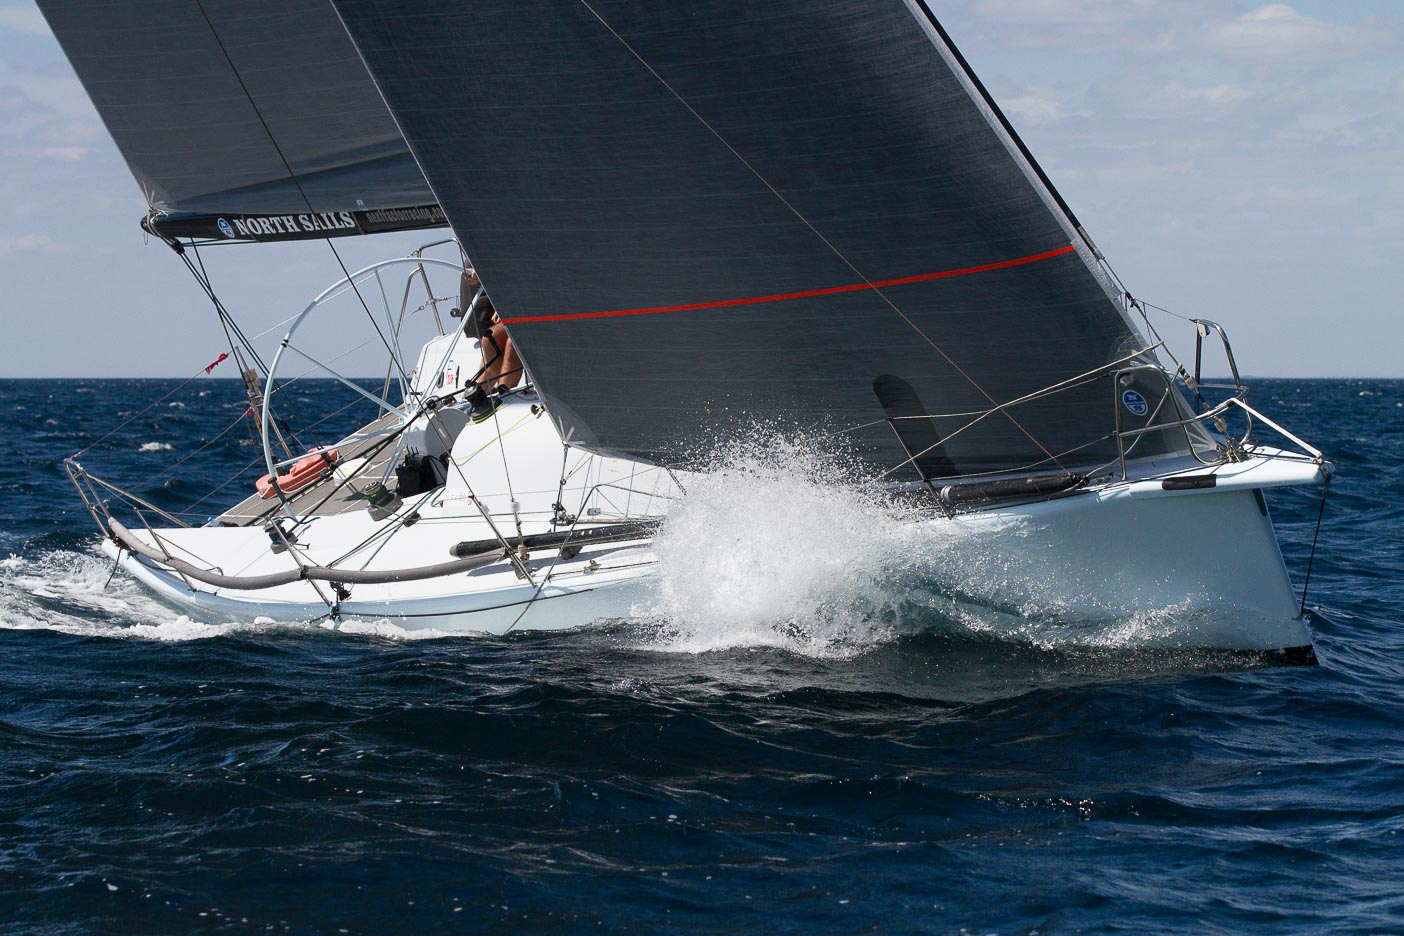 The Next Factor won Division 1 IRC after a strong finish by Black Betty. Photo Bernie Kaaks.